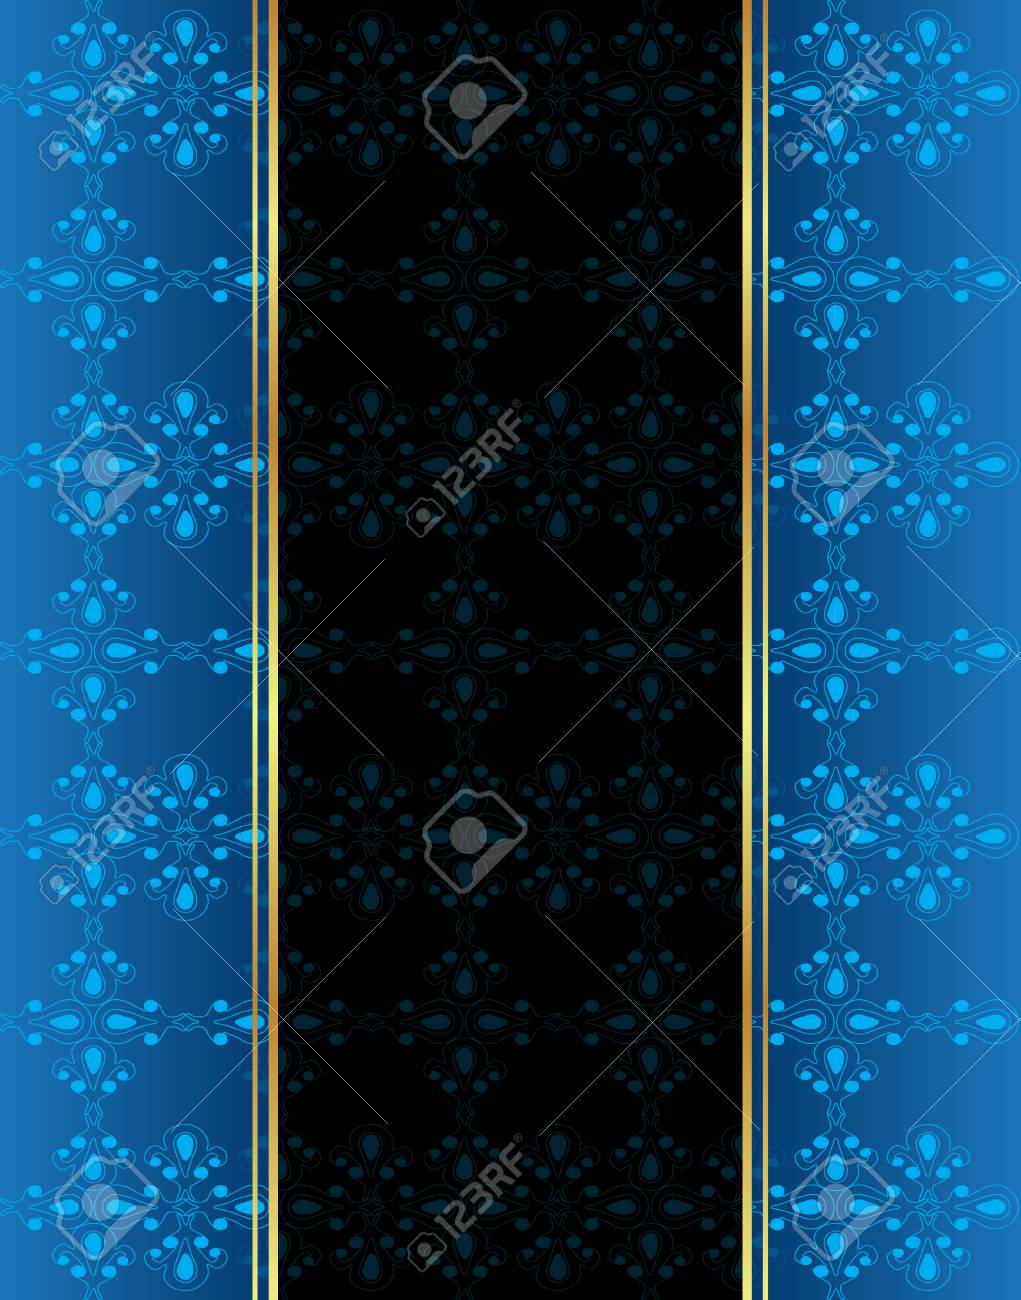 Seamlessly Wallpaper With Dark Blue Color Tones Royalty Free